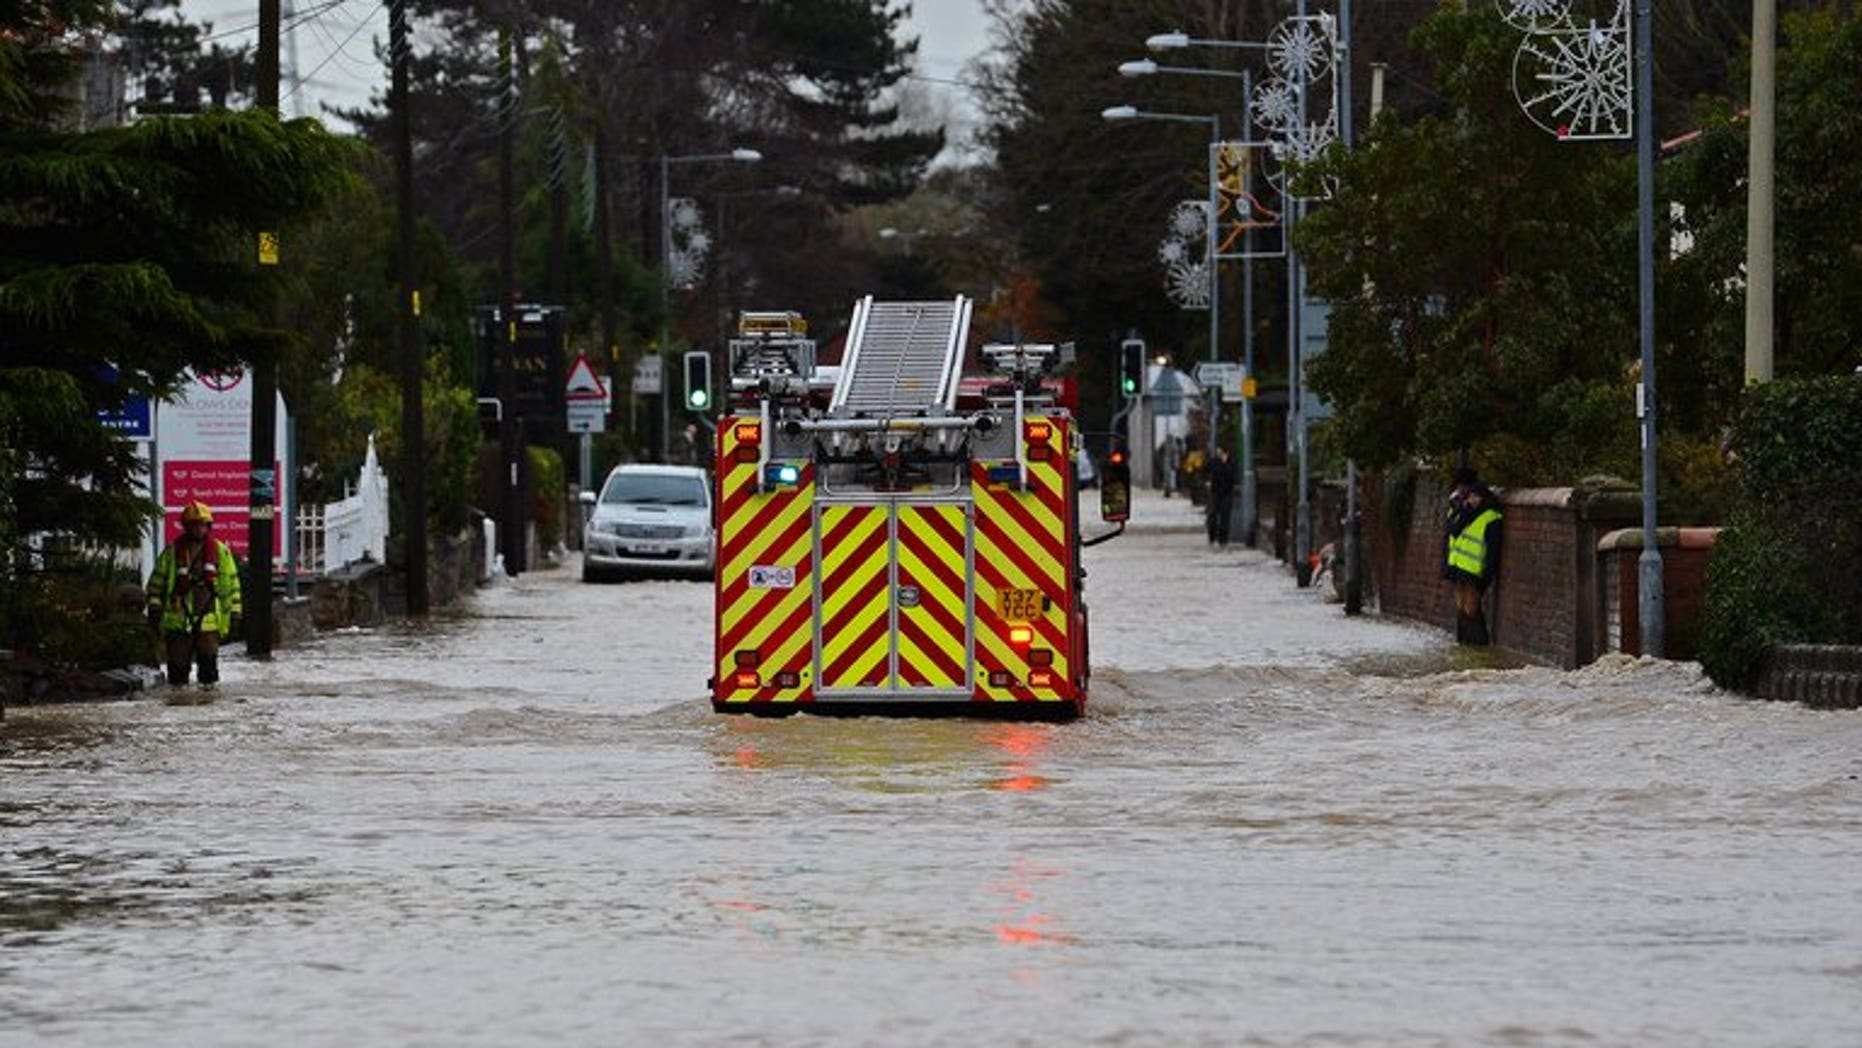 """Fire crews pumped water out of properties in the West Yorkshire town of Todmorden after a """"torrential"""" downpour caused flash floods. File picture for illustration only shows a fire engine moving along a flooded road."""